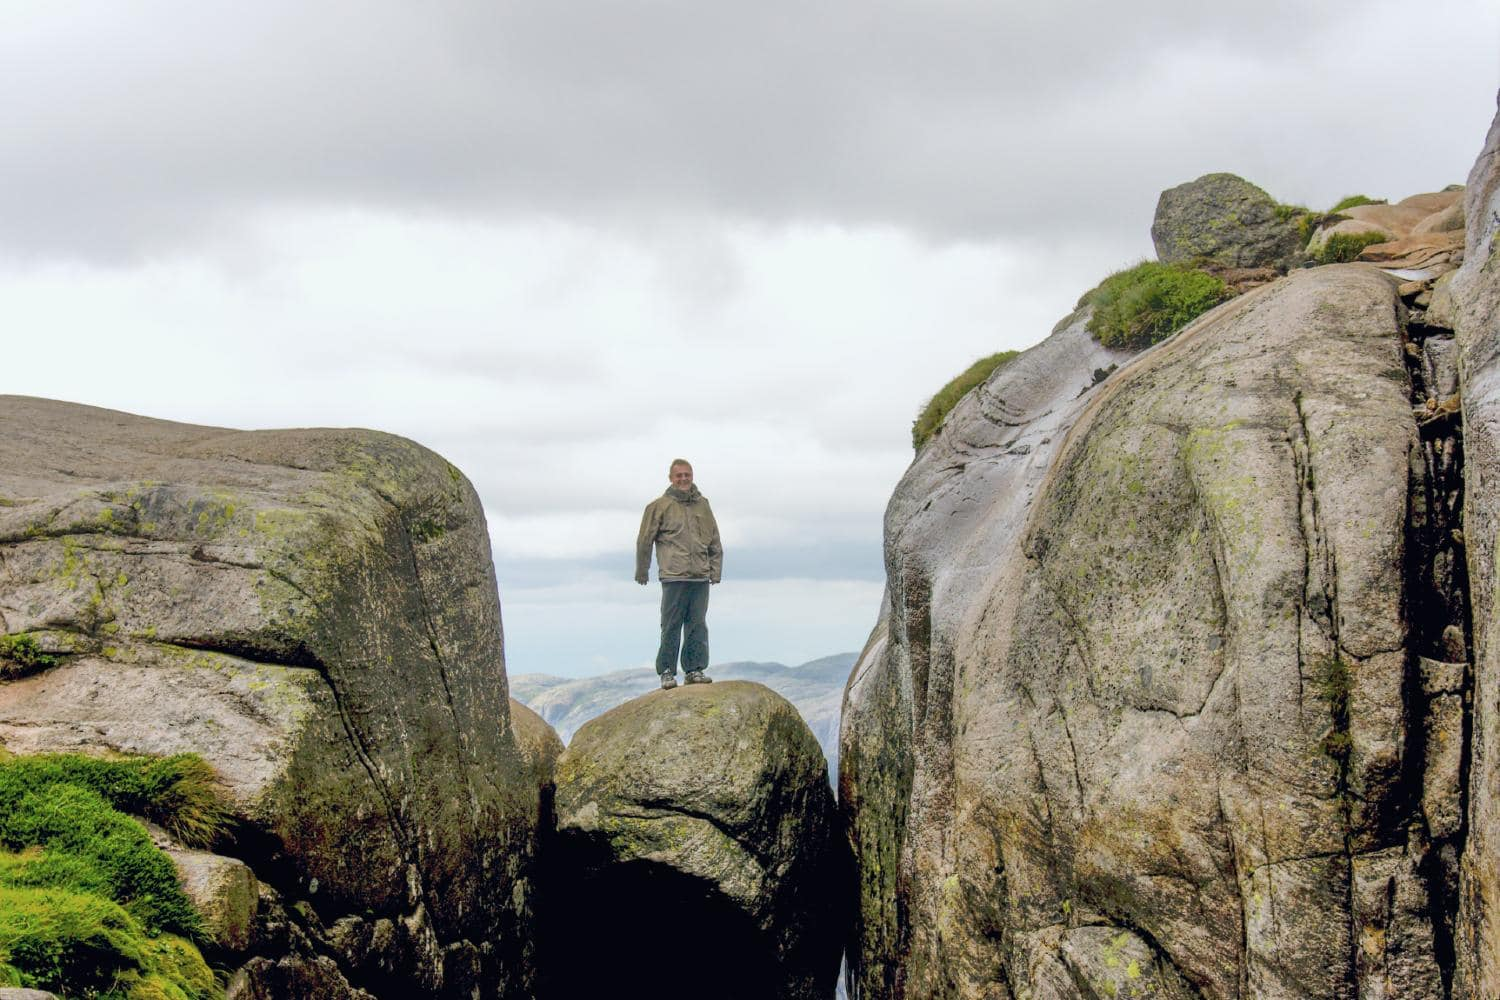 A hiker standing on top of the Kjeragbolten stone between two mountains in Lysefjorden Norway